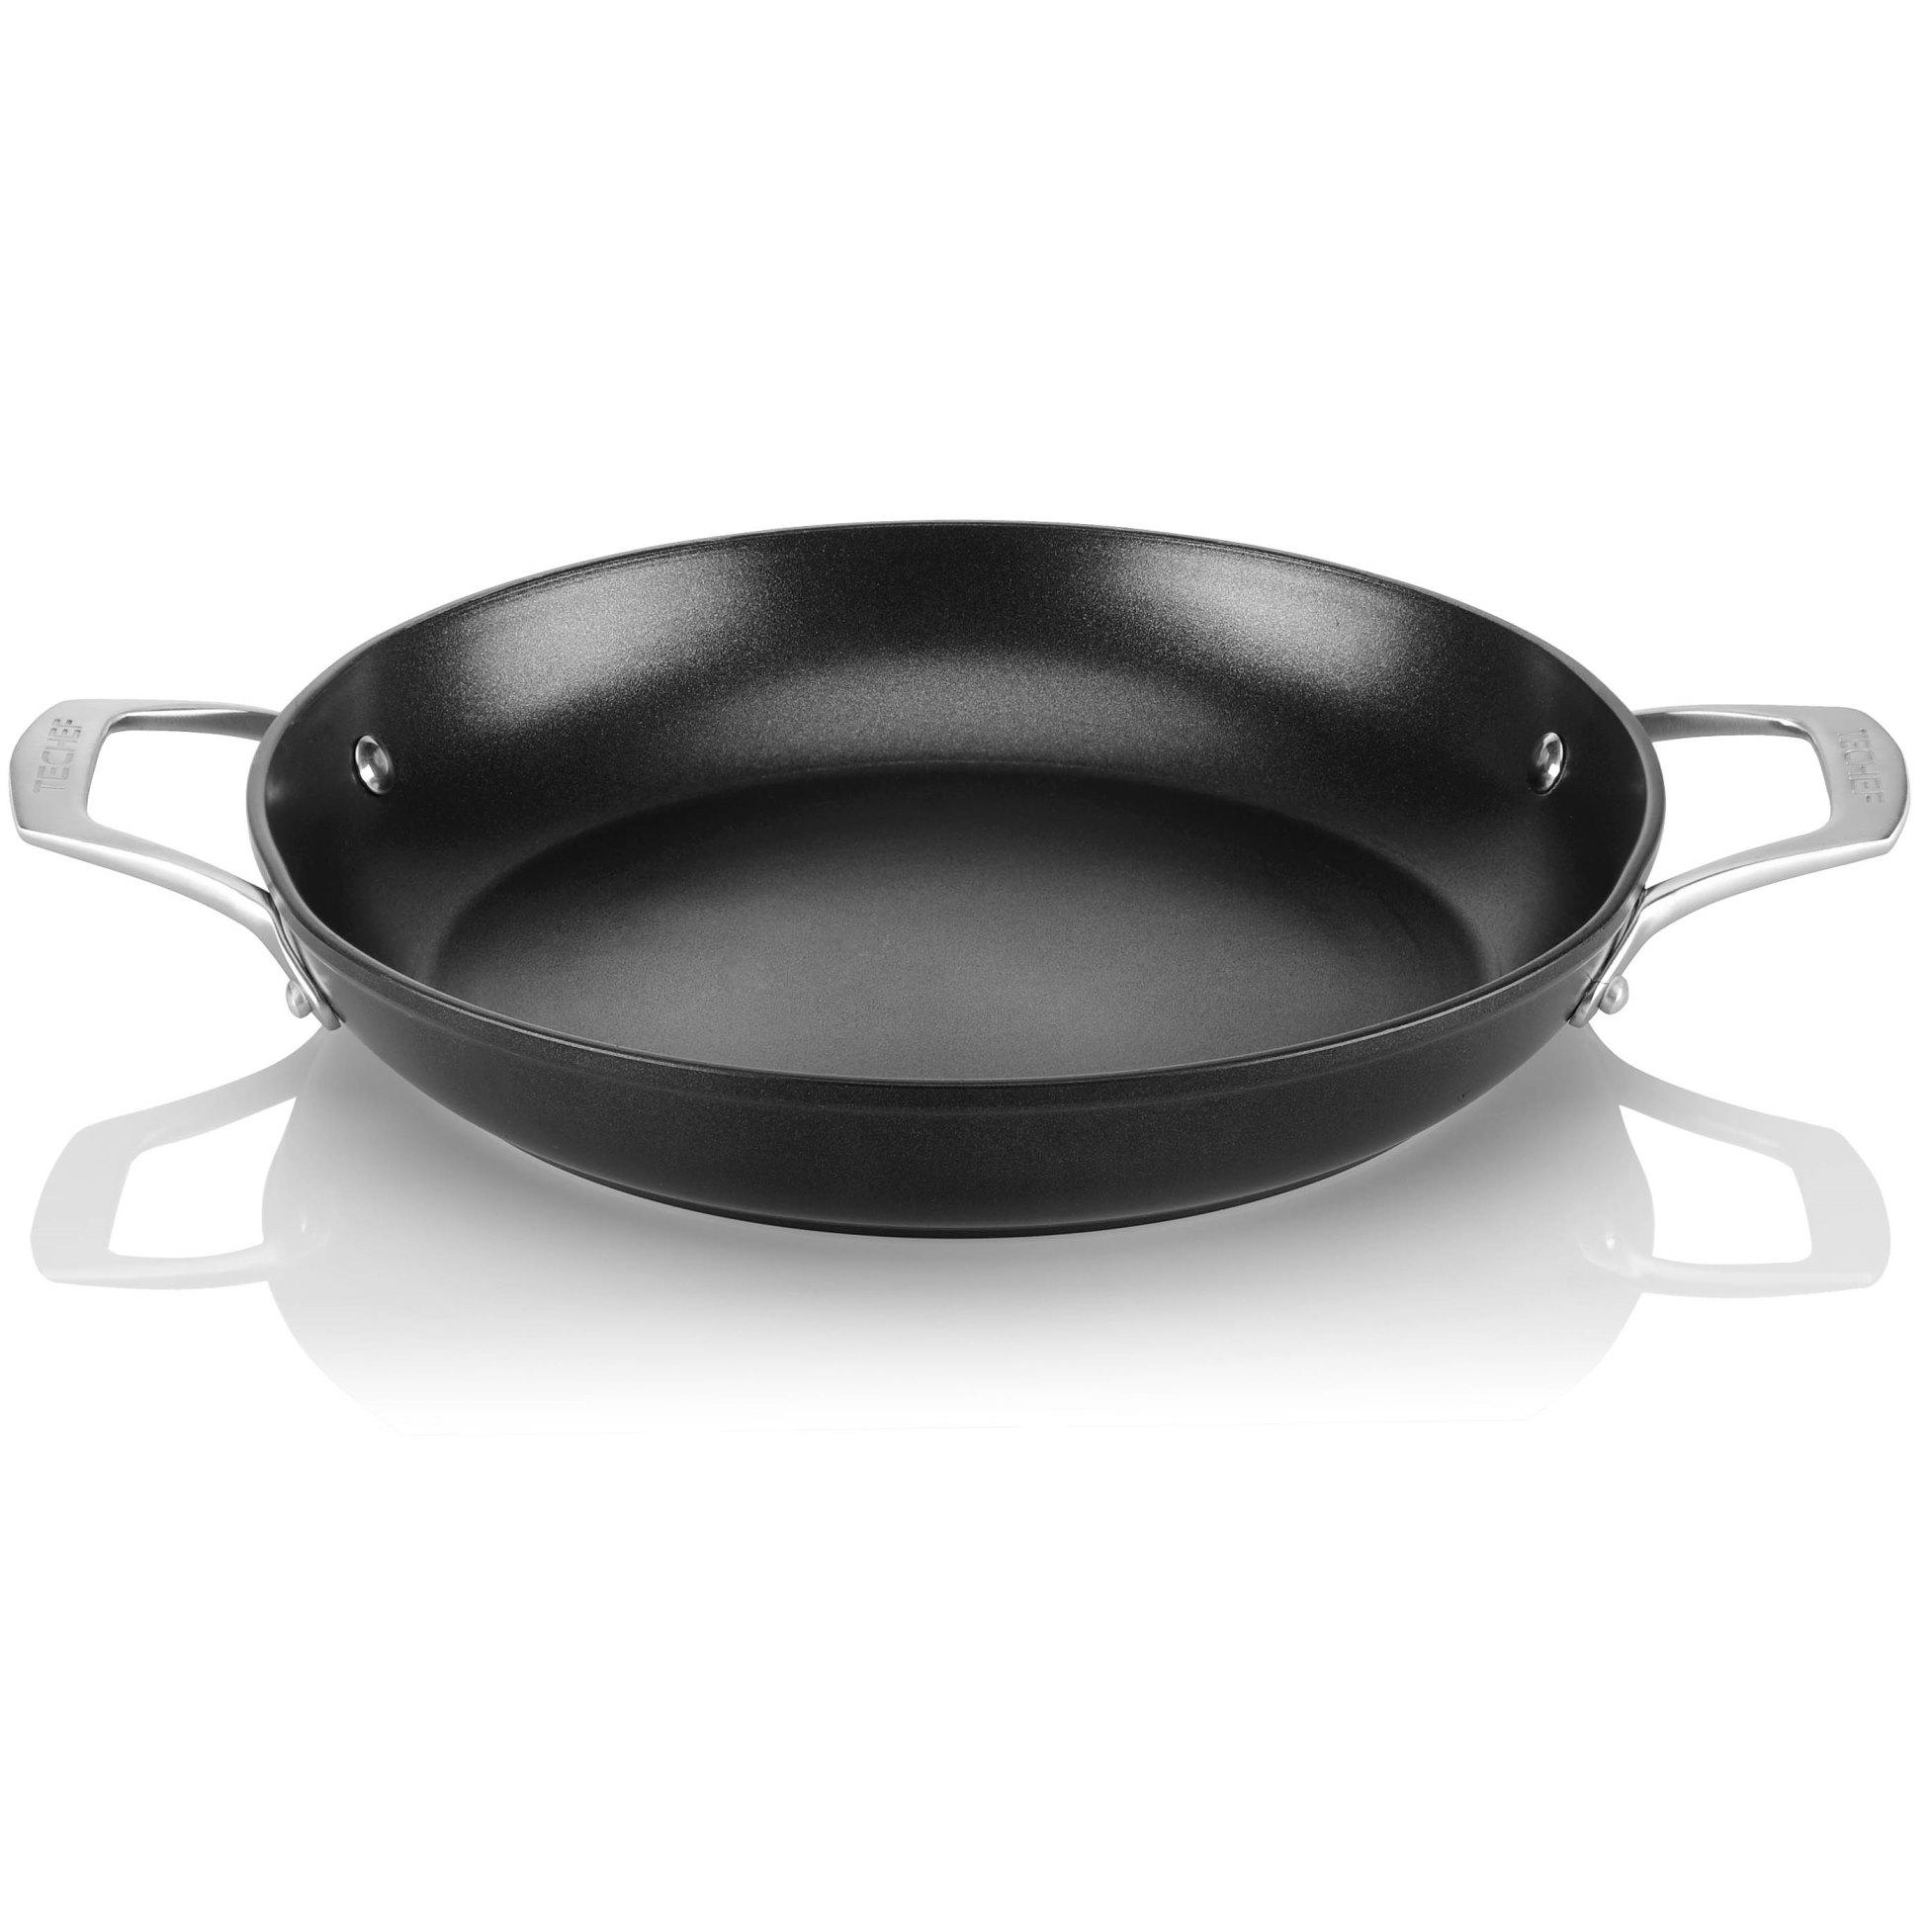 "Amazon.com: TECHEF - Onyx Collection, 12"" Frying Pan ...